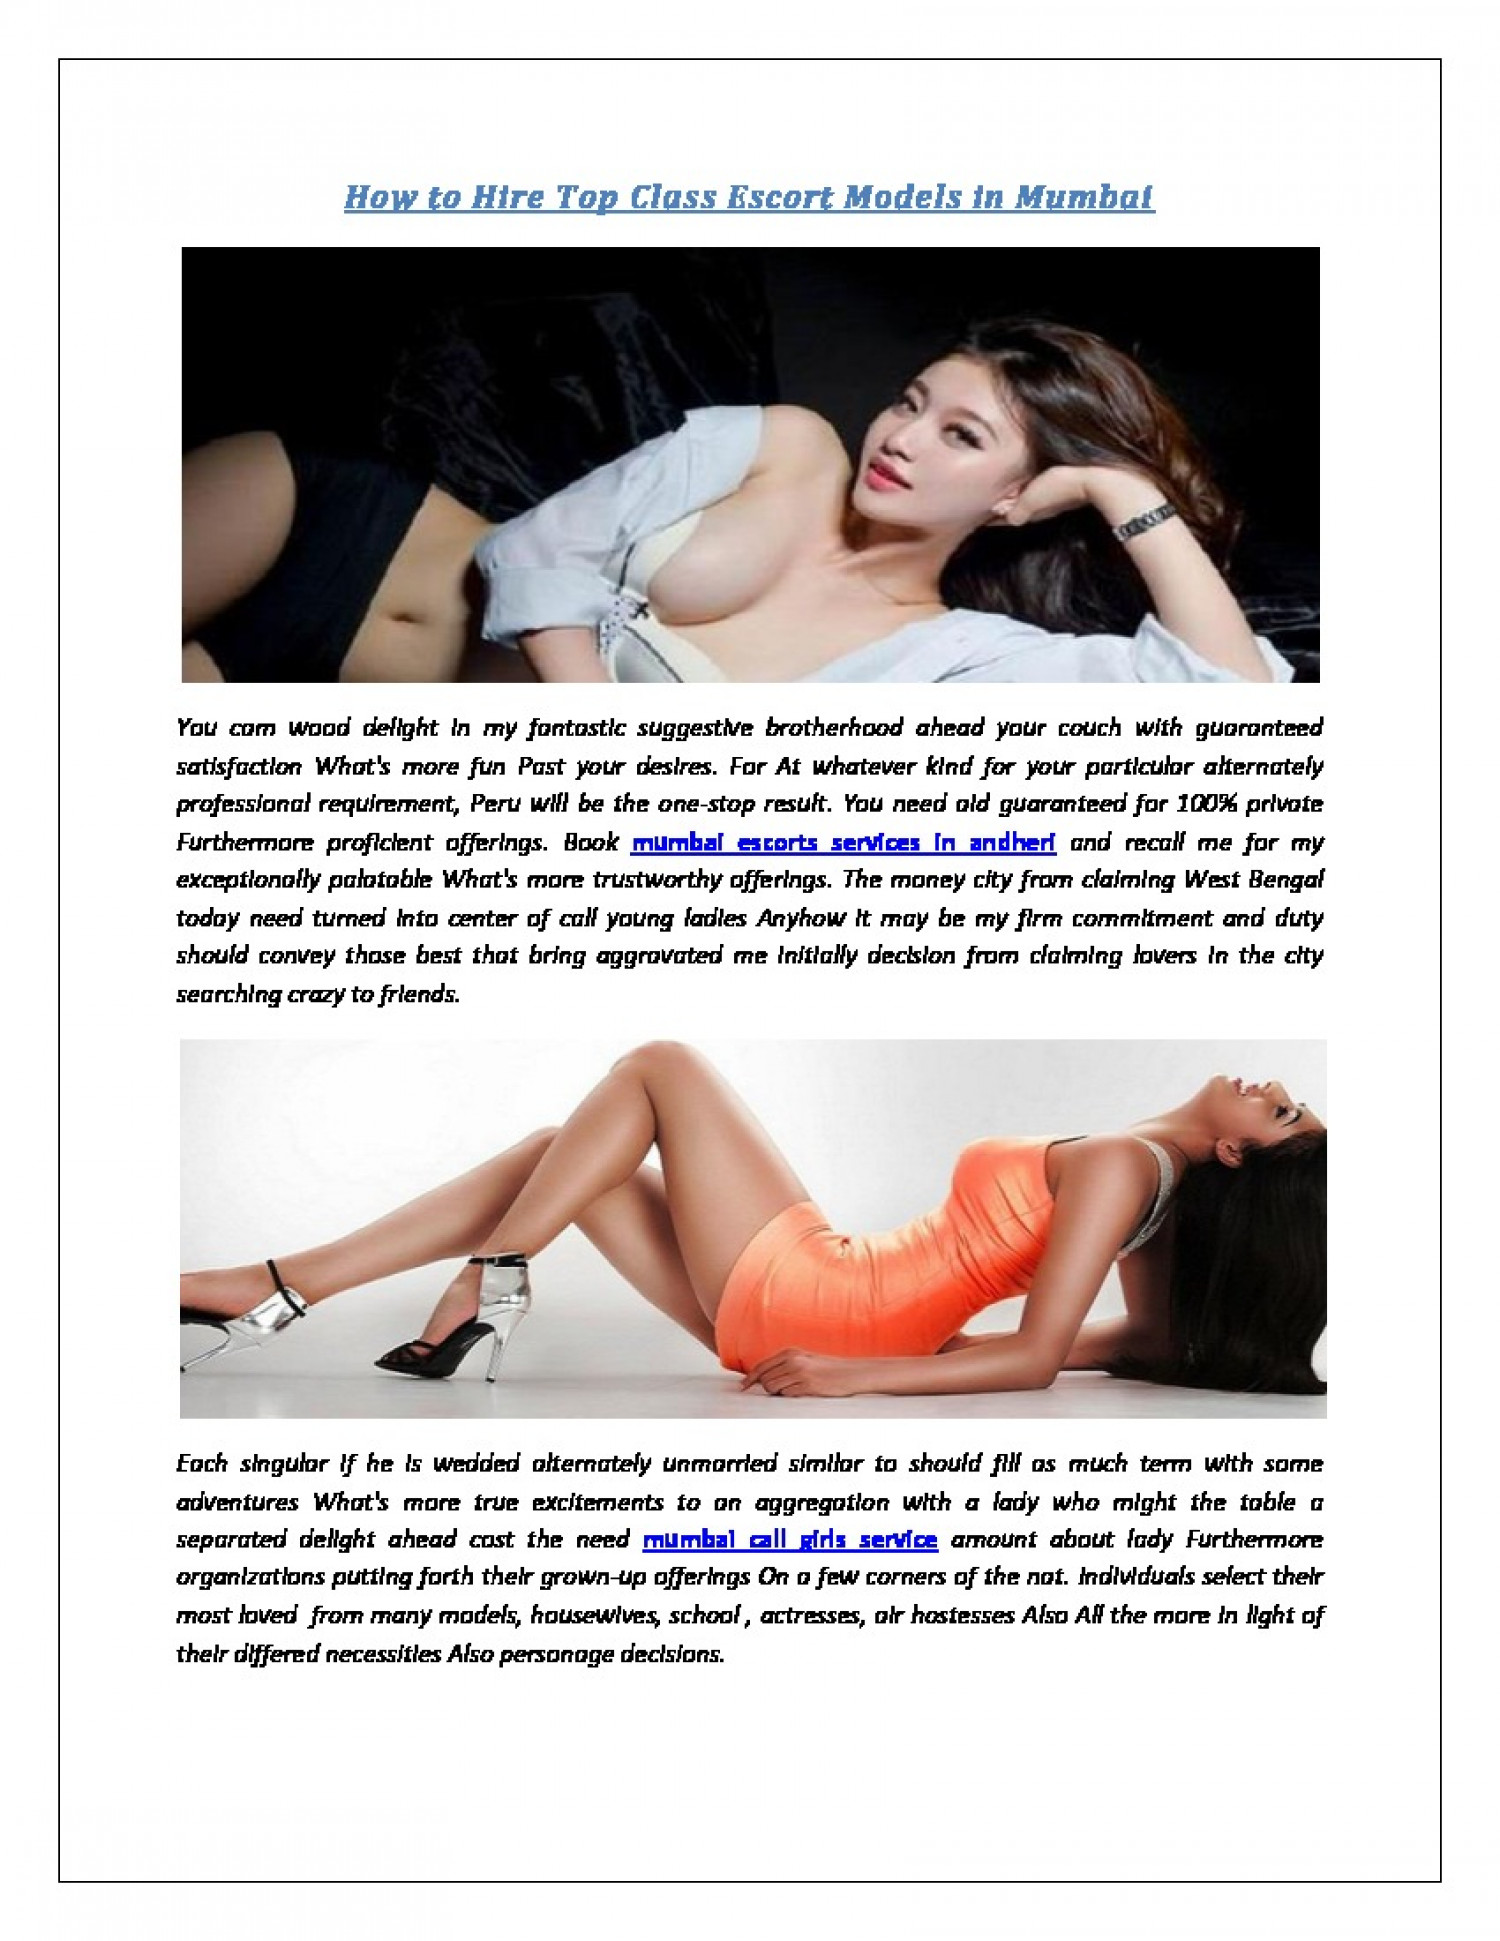 Call Girls Services Escorts in Mumbai Infographic